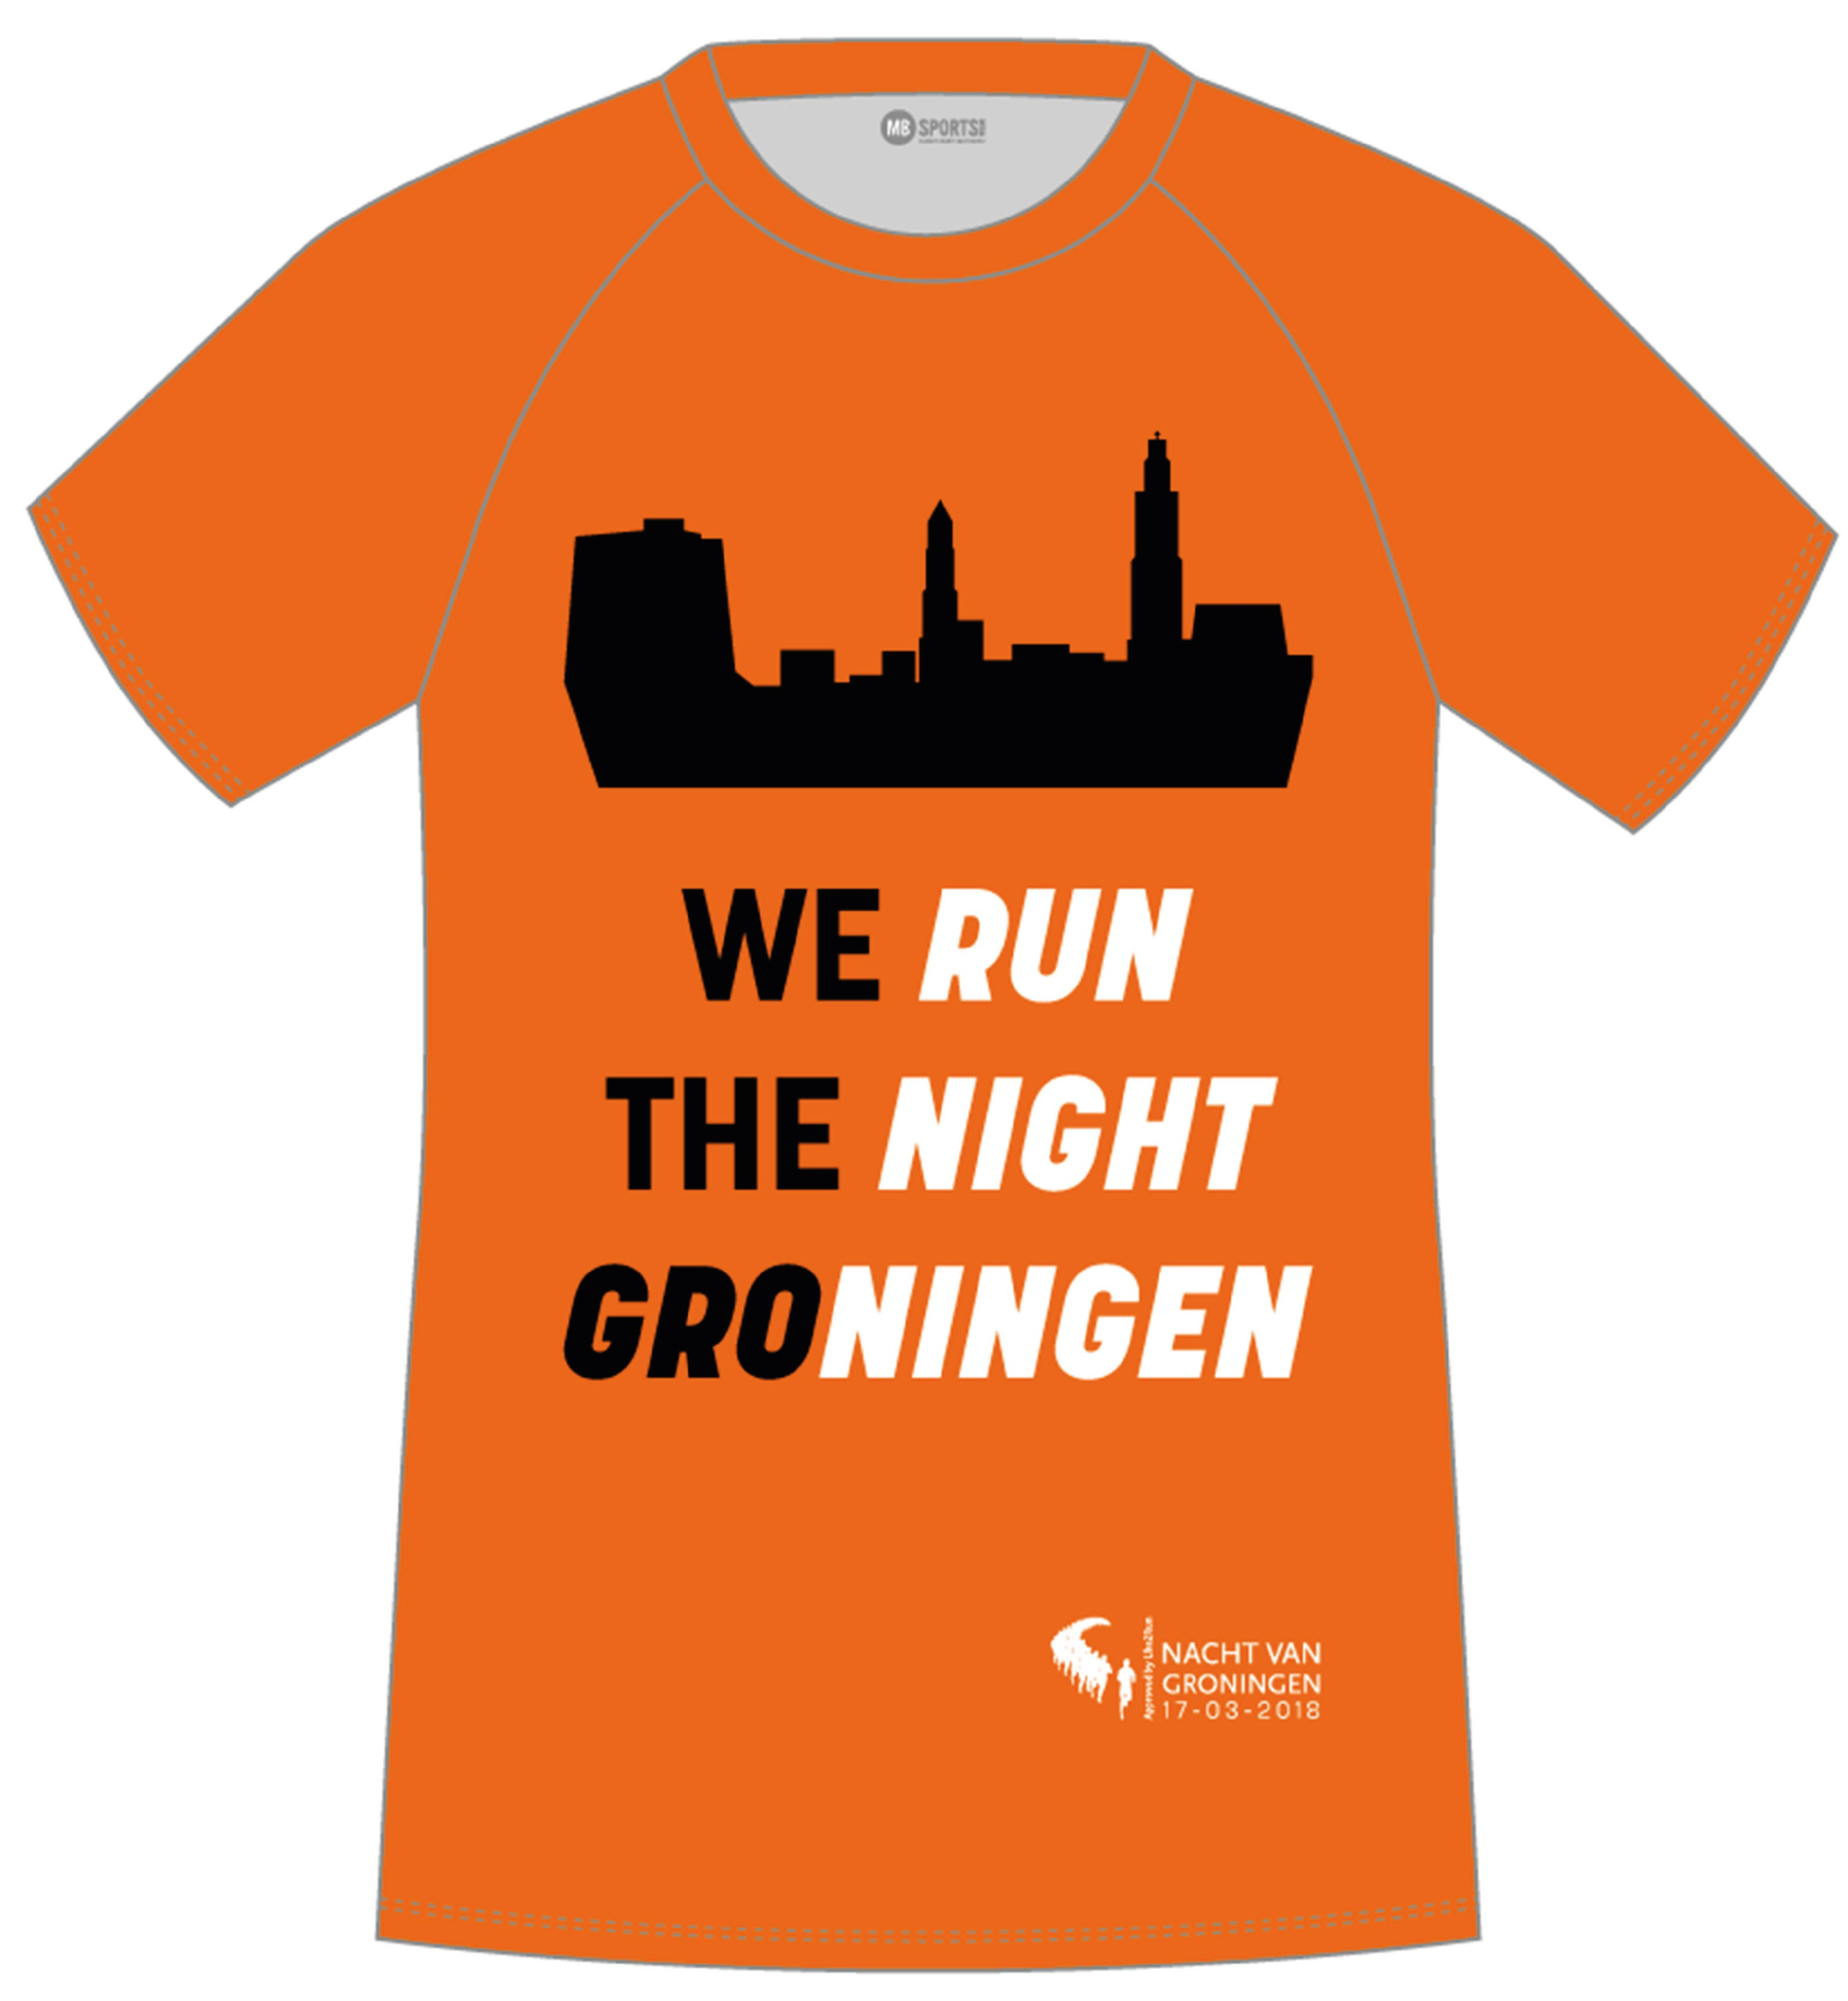 Speciaal running shirt We Run The Night Groningen